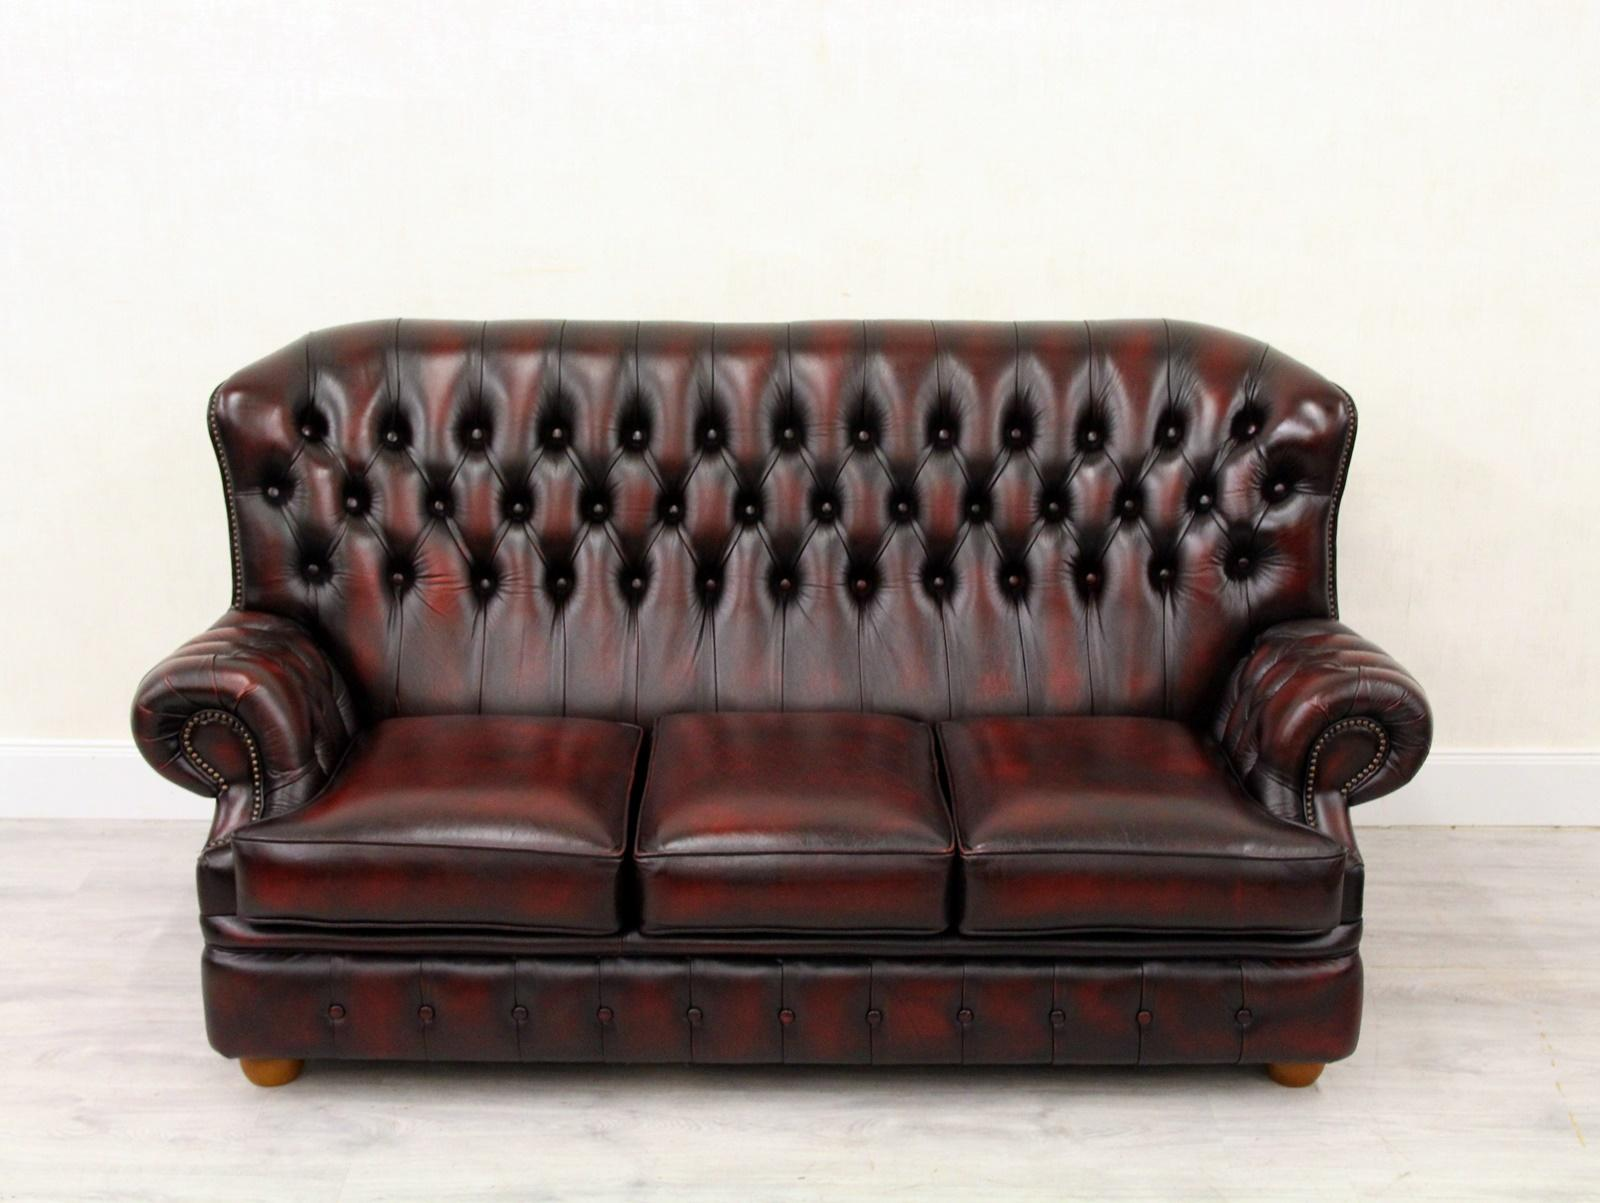 Chesterfield Sofa Armchair Leather Antique TV Armchair English